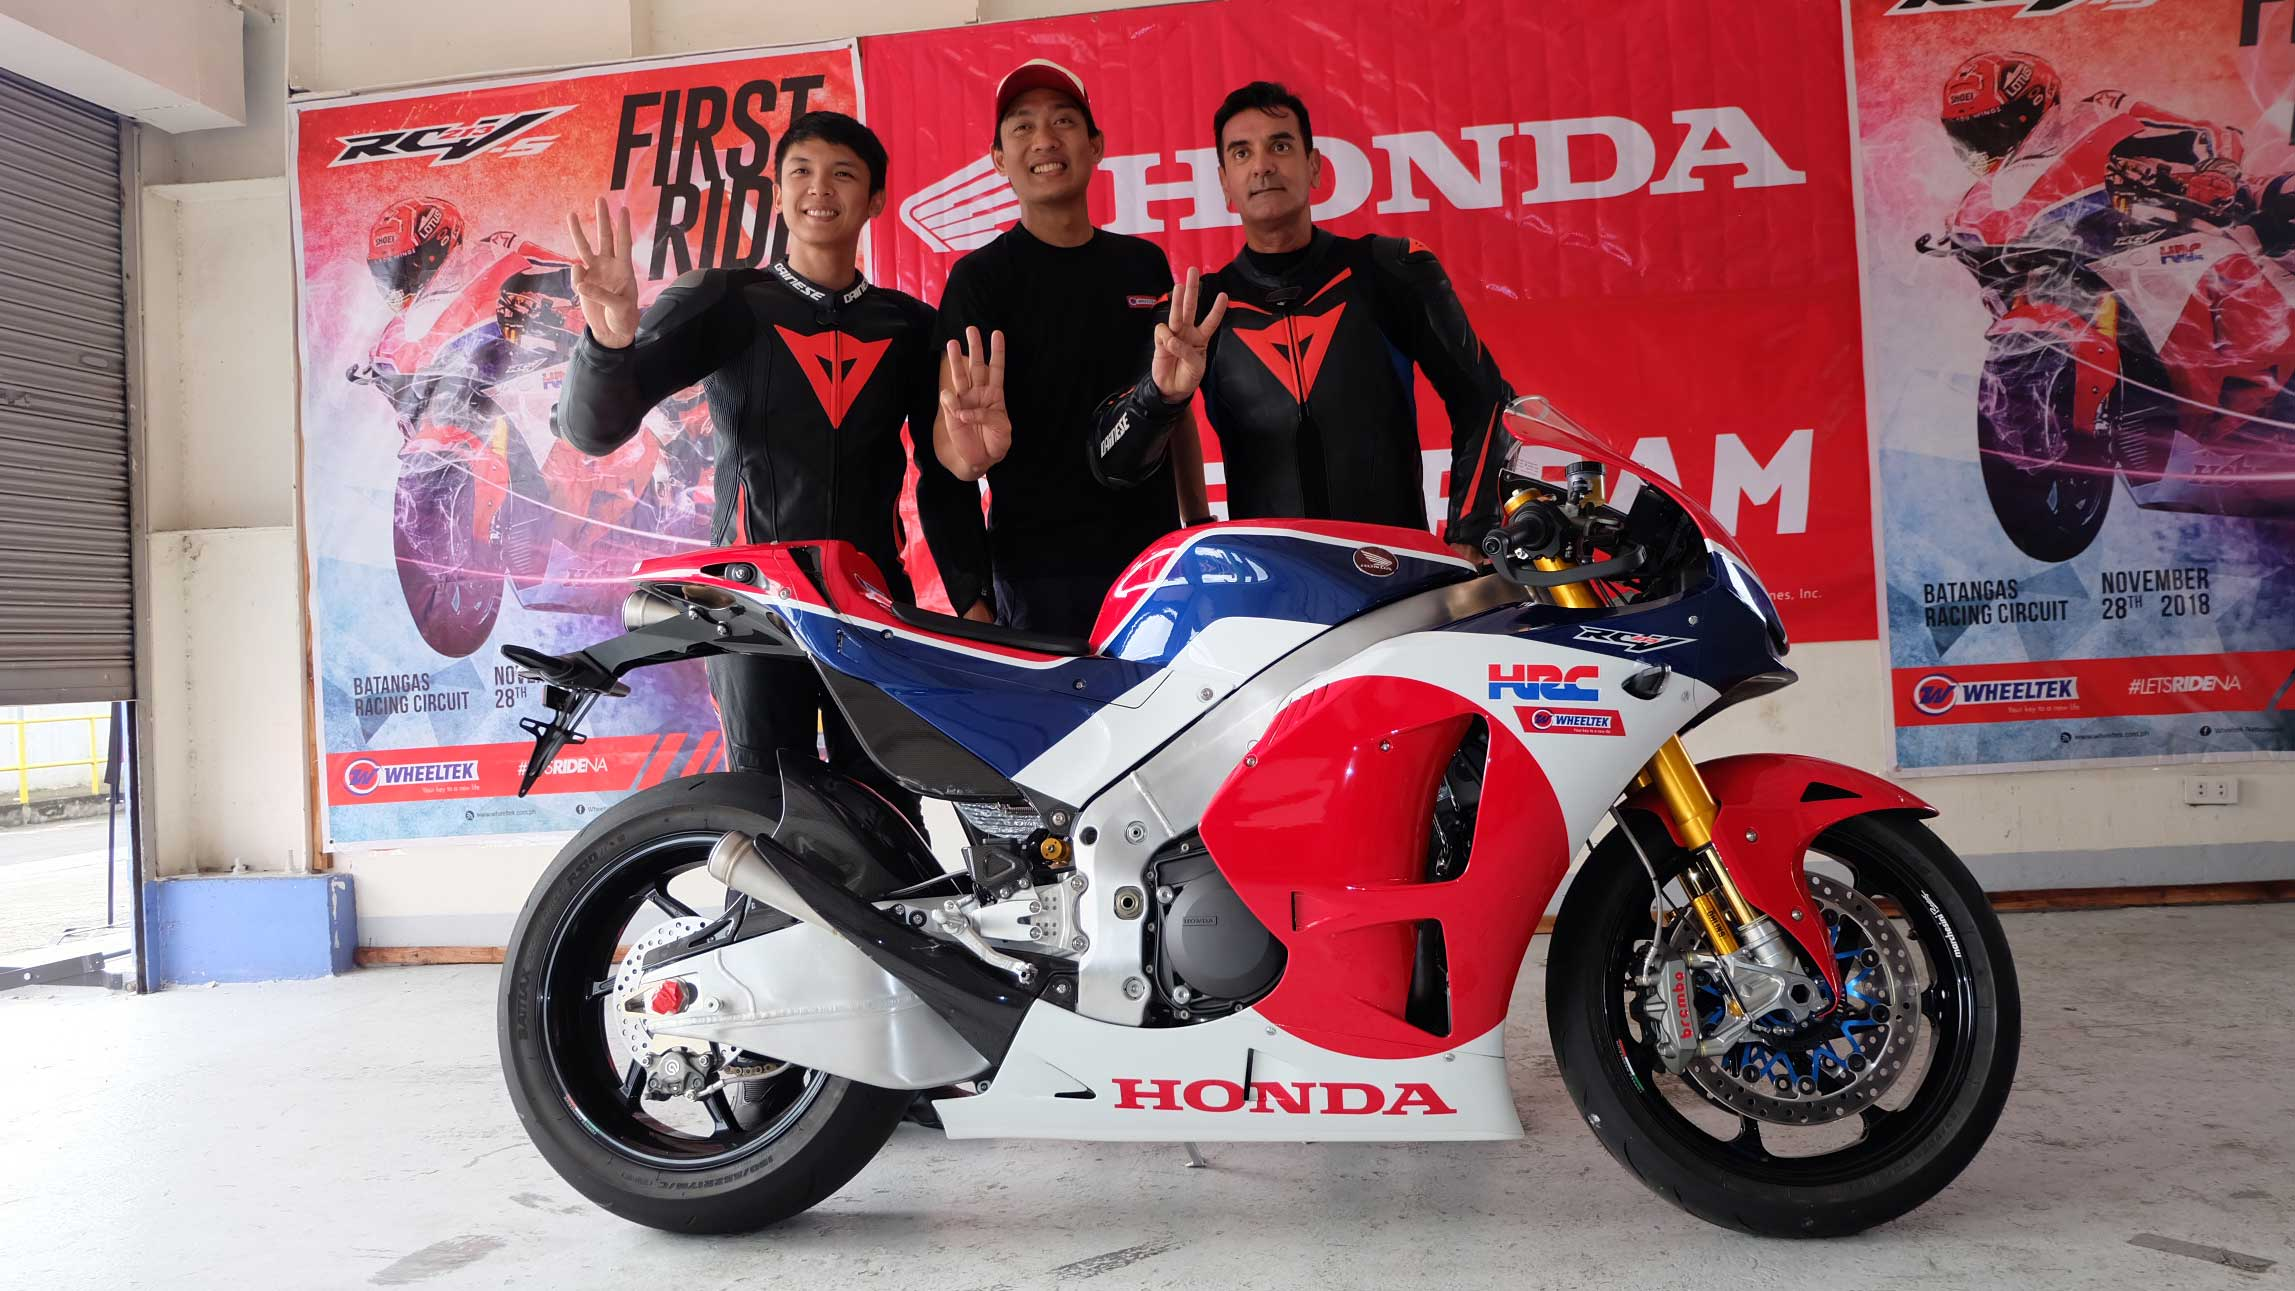 Honda Motorcycles Top Gear Philippines Motorcycle Bike 11 Images Rc213v S Race Inspired Sees Action At Batangas Racing Circuit